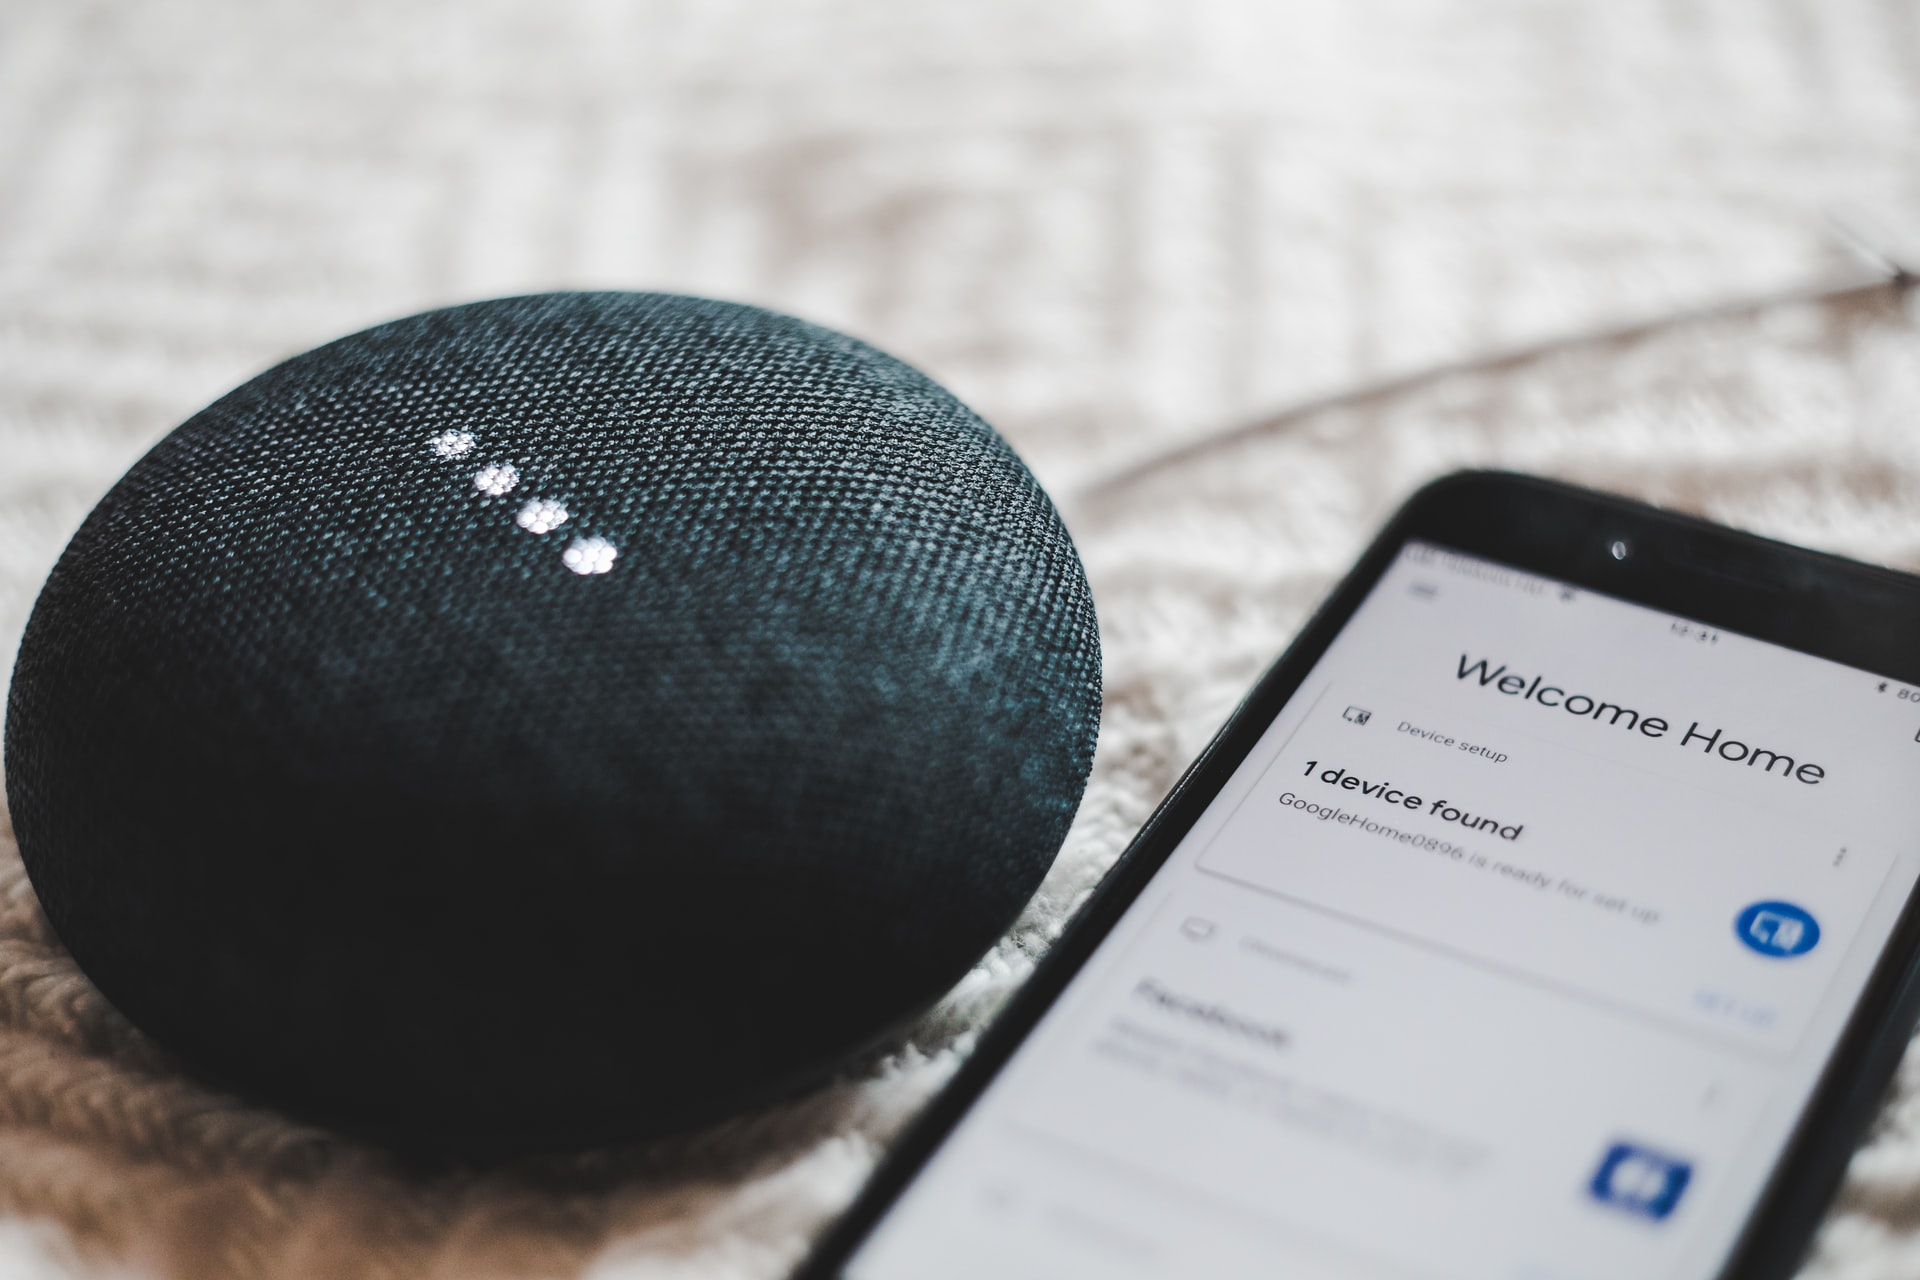 14_contactless check-in for vacation rentals can also be connected to smart speakers. A smart speaker next to a phone